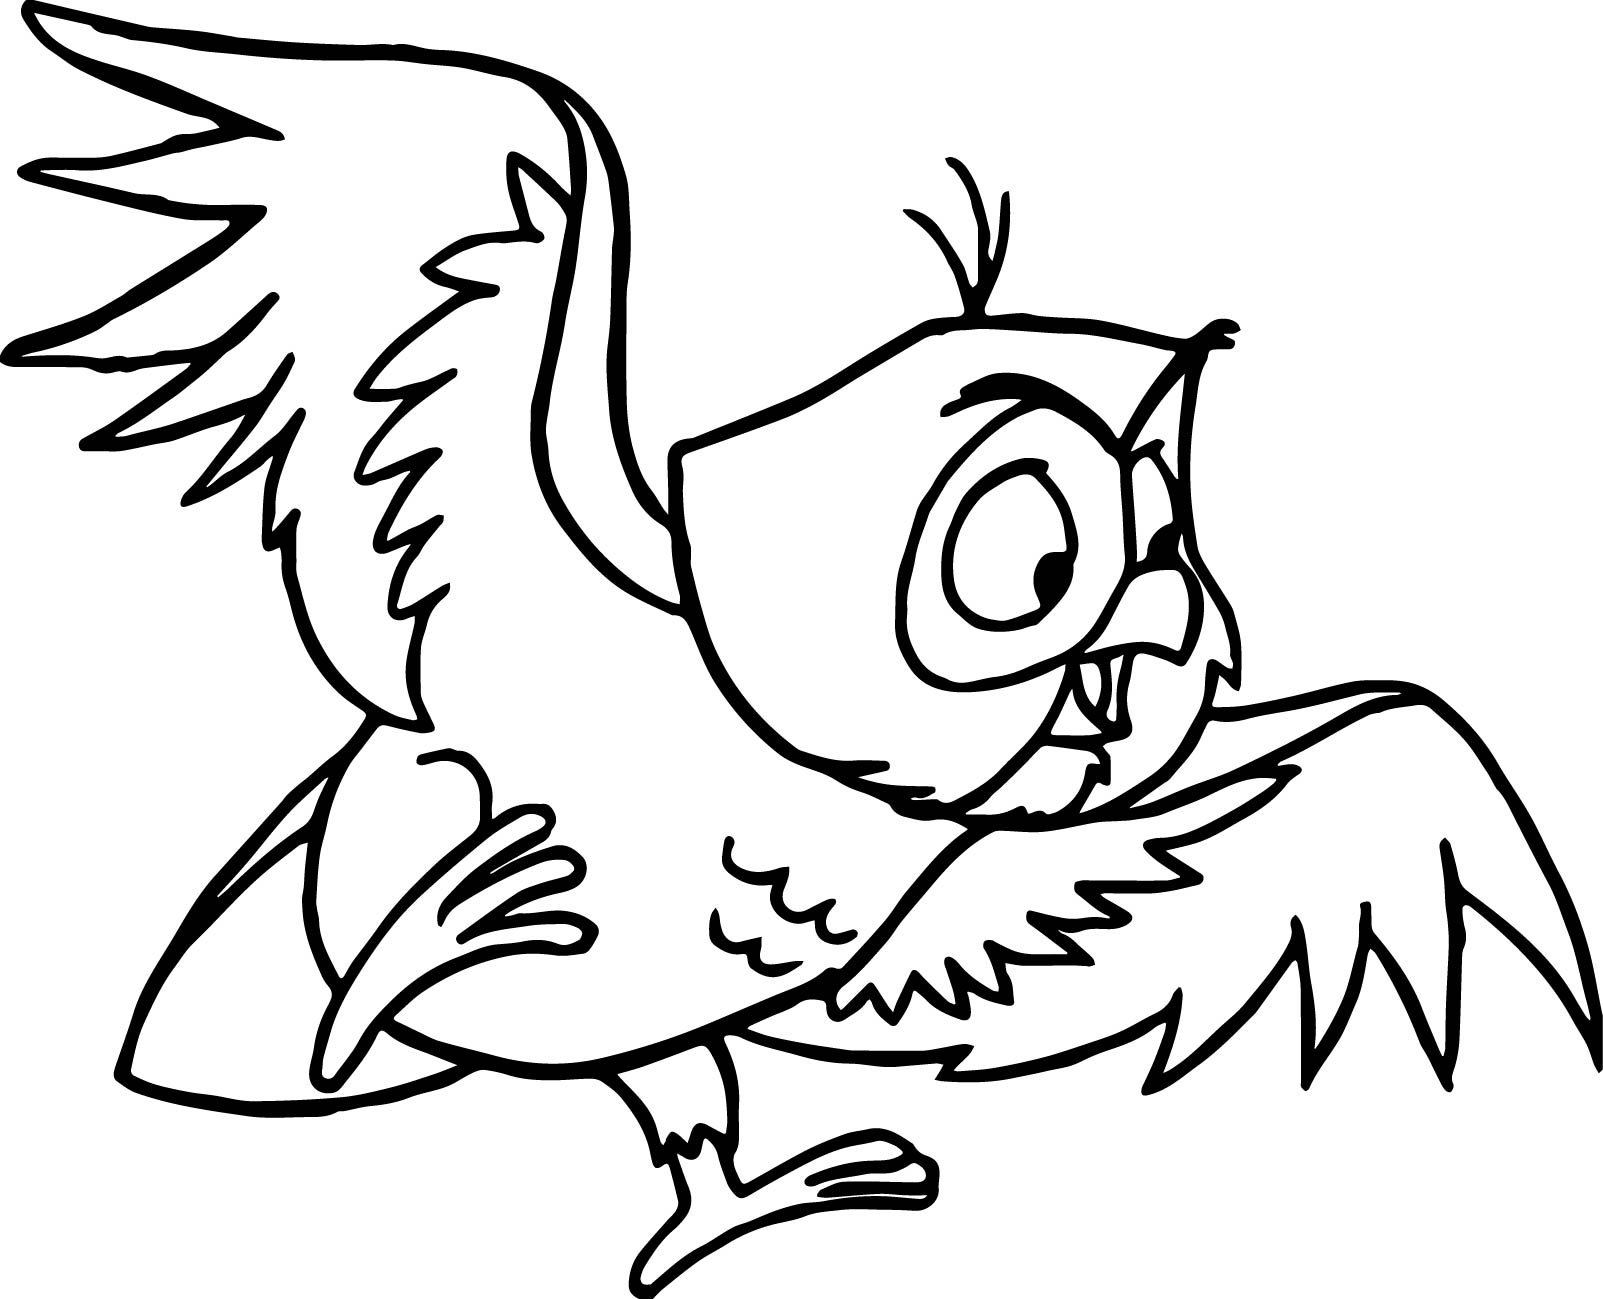 Aurora misc sleeping beauty animal owl coloring page for Sleeping coloring pages